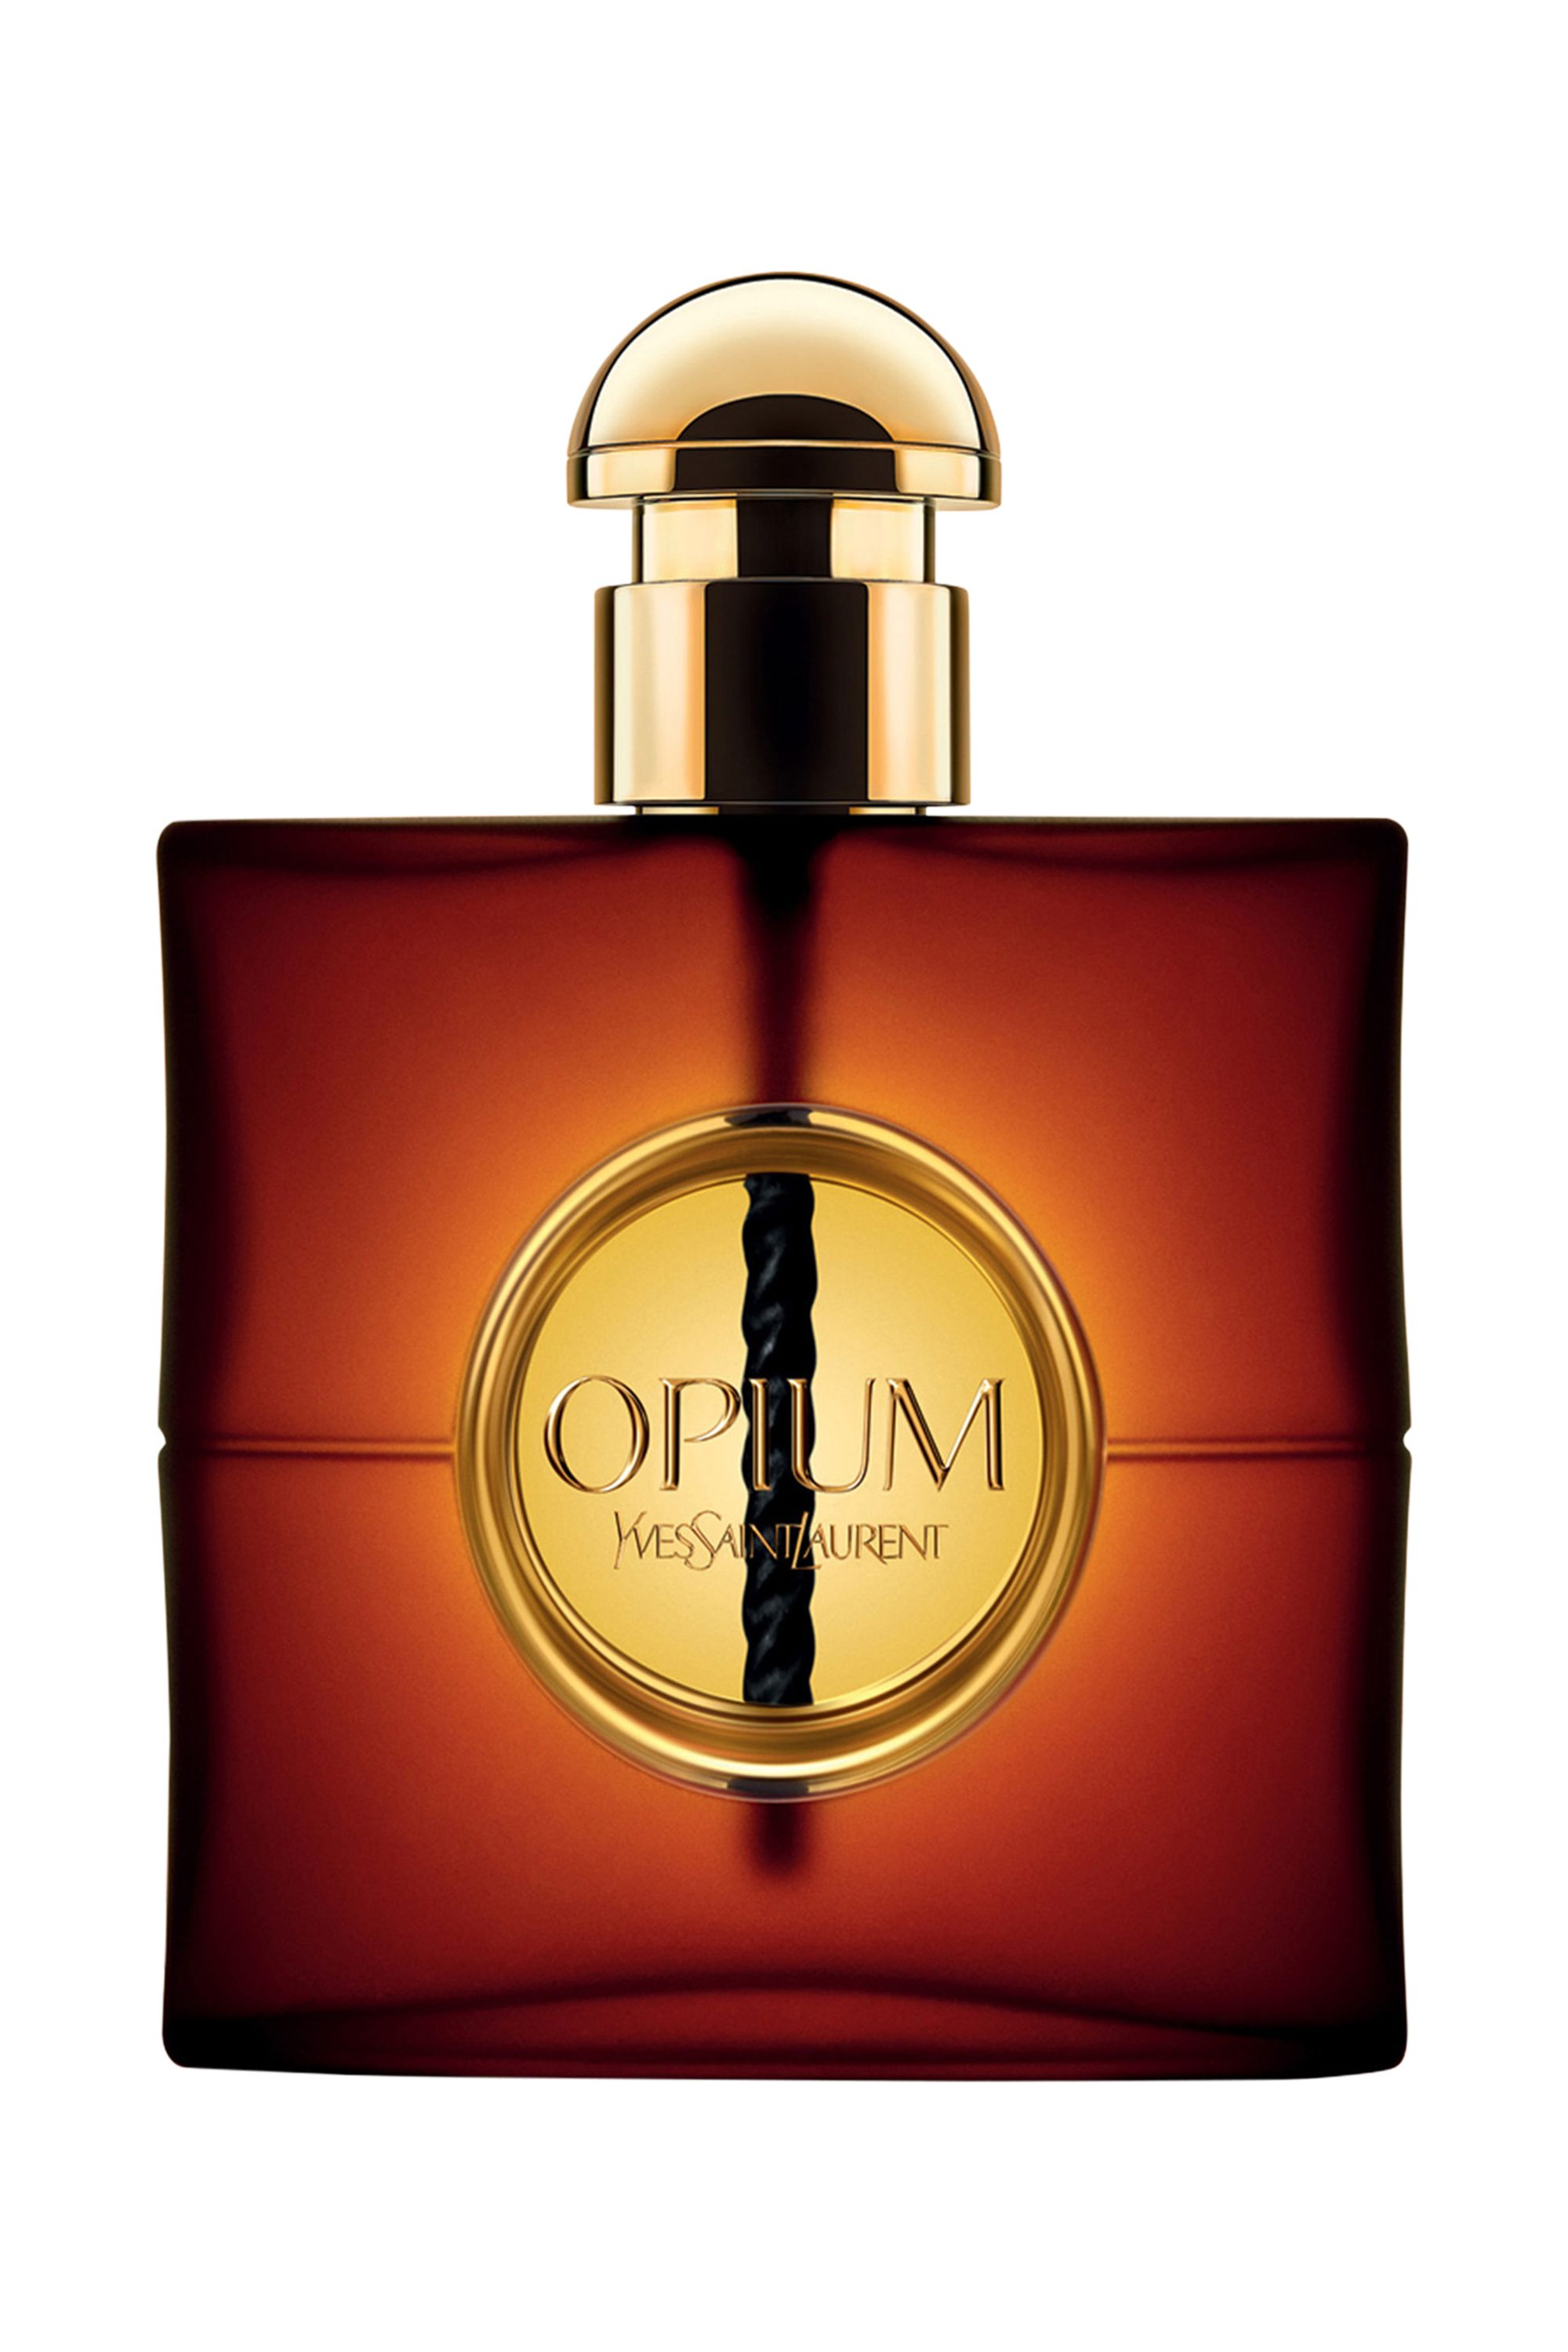 Blissim : Yves Saint Laurent - Opium Eau de Parfum - 50 ml